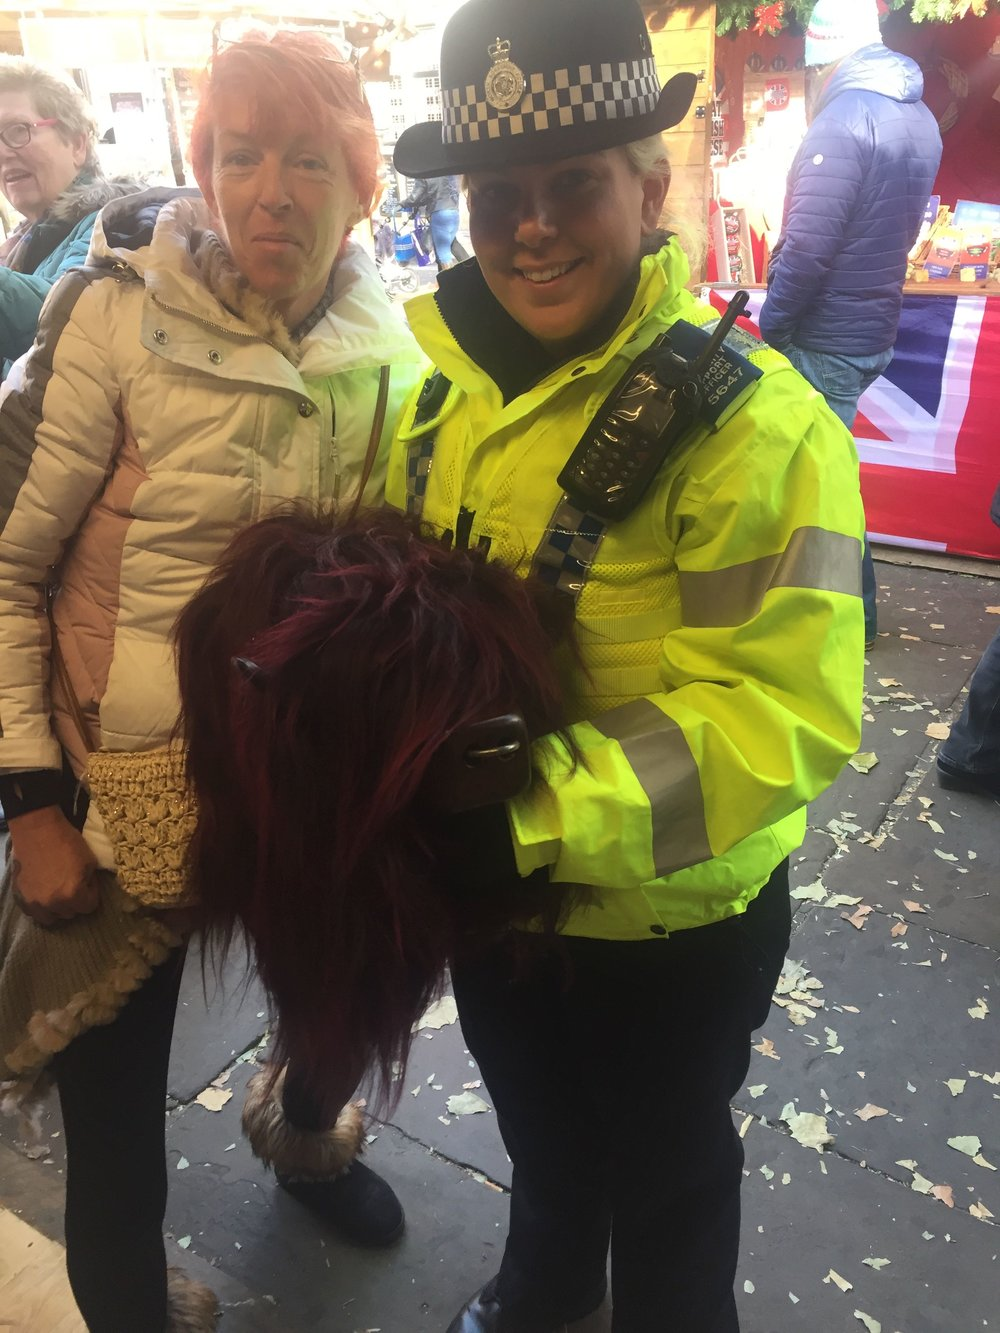 PC Kate was delighted to have a cuddle whilst on the beat. Burgundy Ice bull matches the day glow yellow .